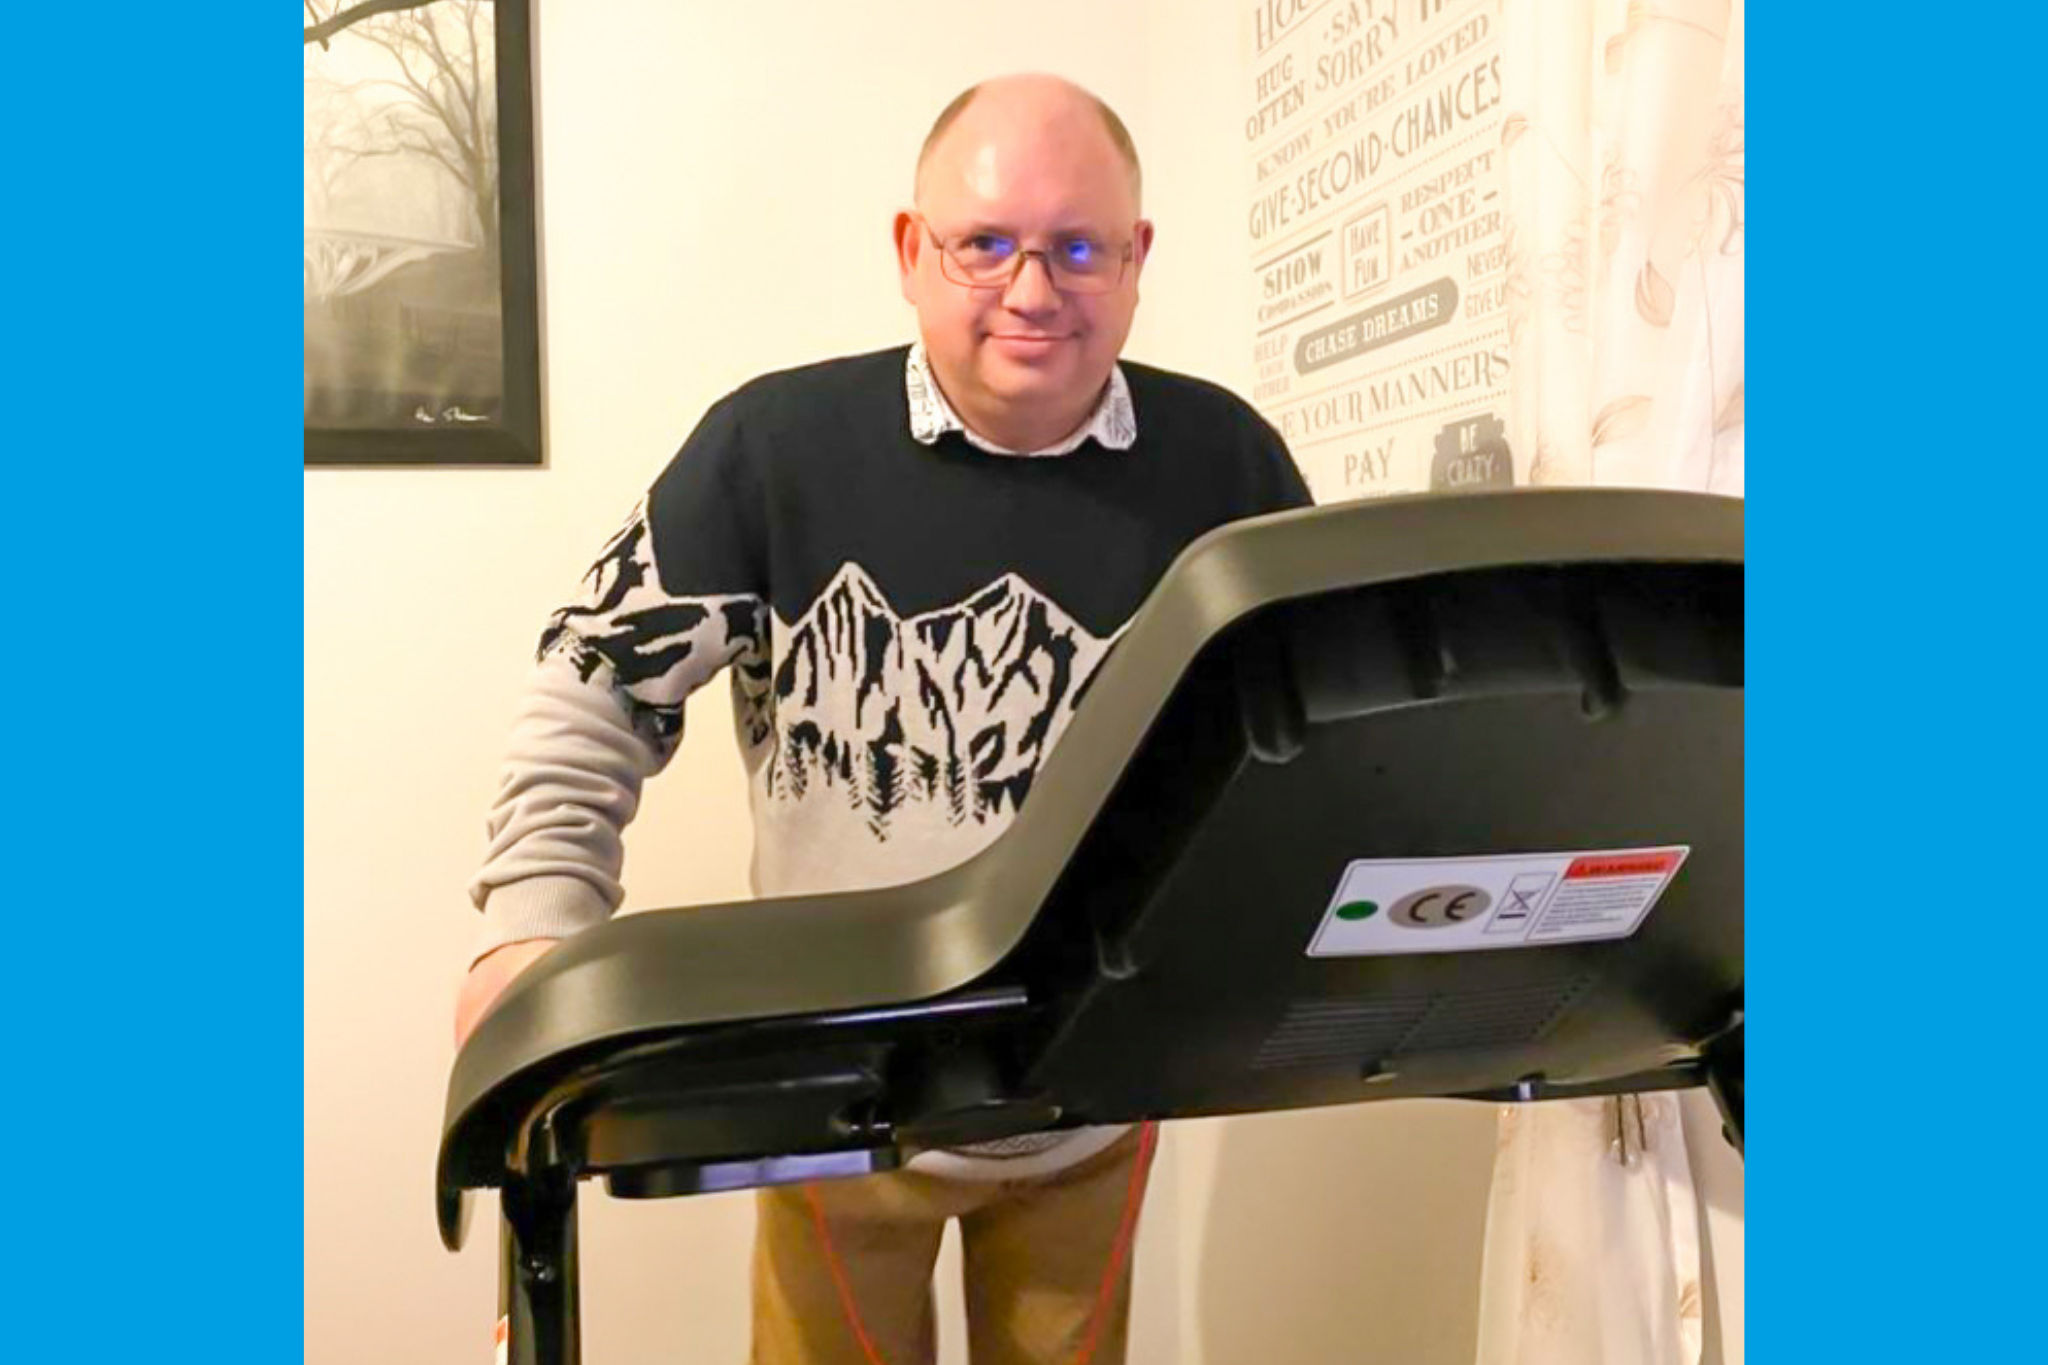 brian diabetes treadmills beats liverpool